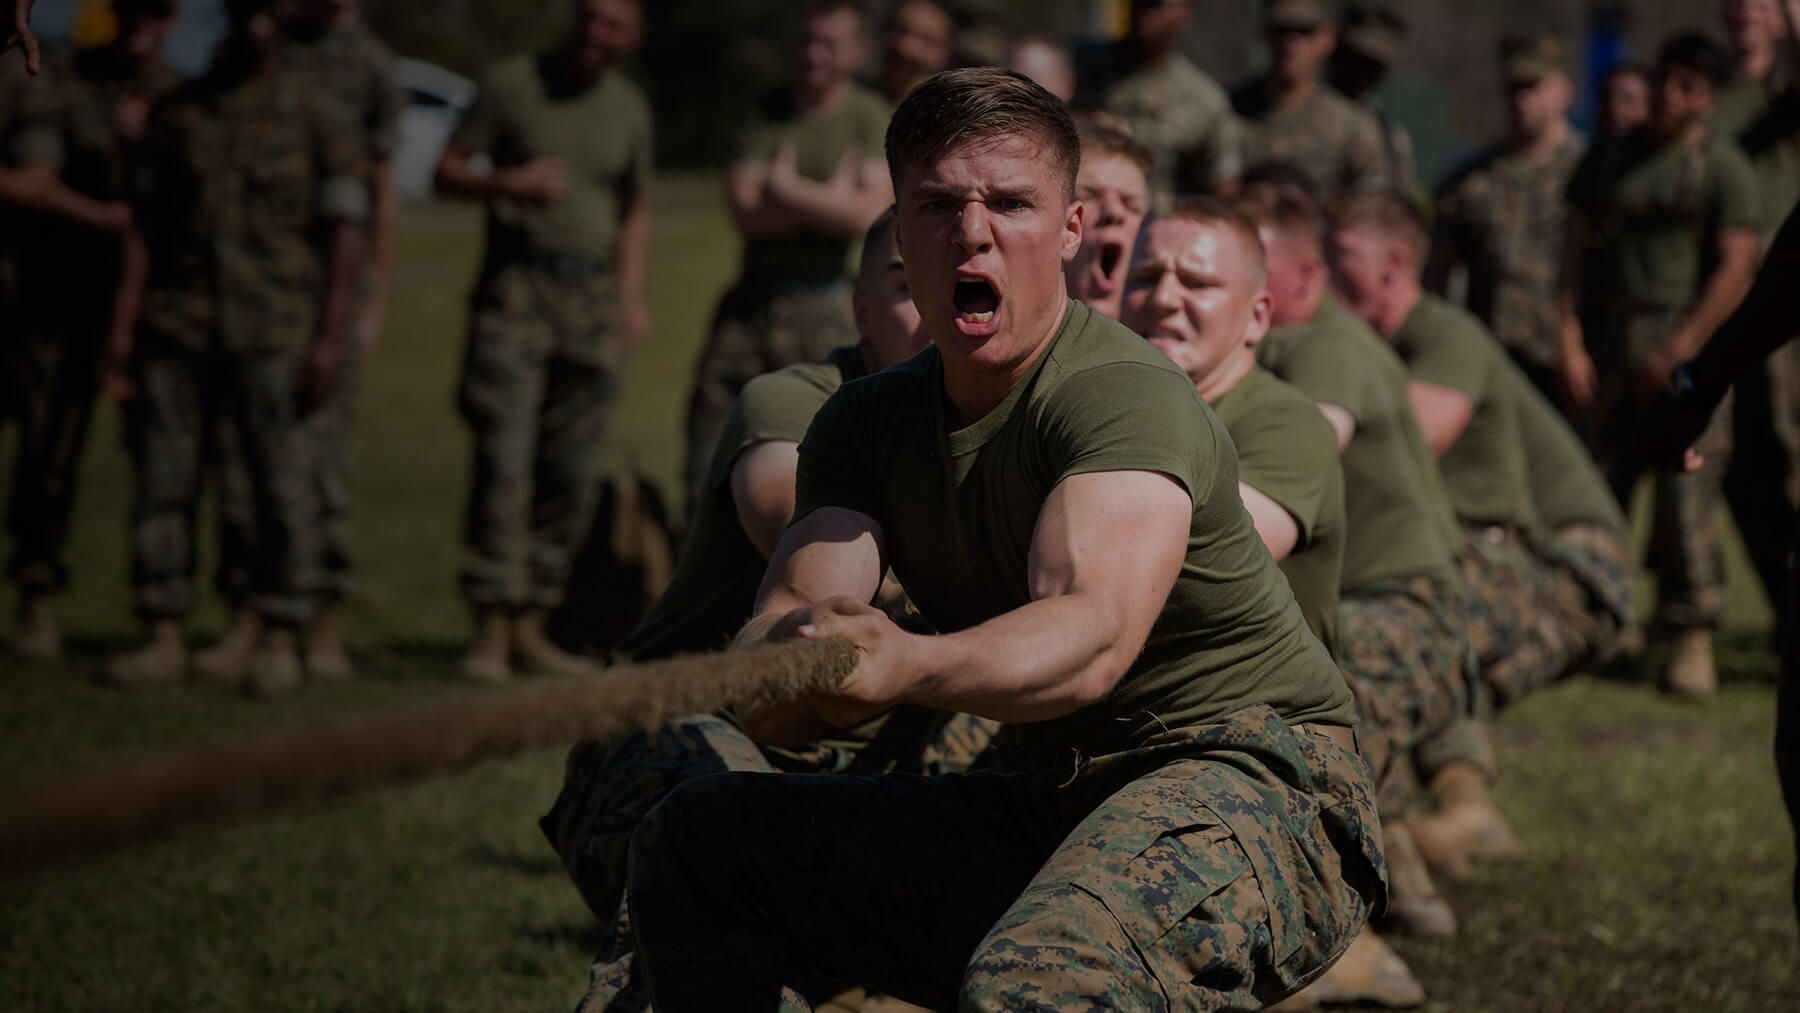 A group of Marines pulls a large braided rope during a tug of war exercise.